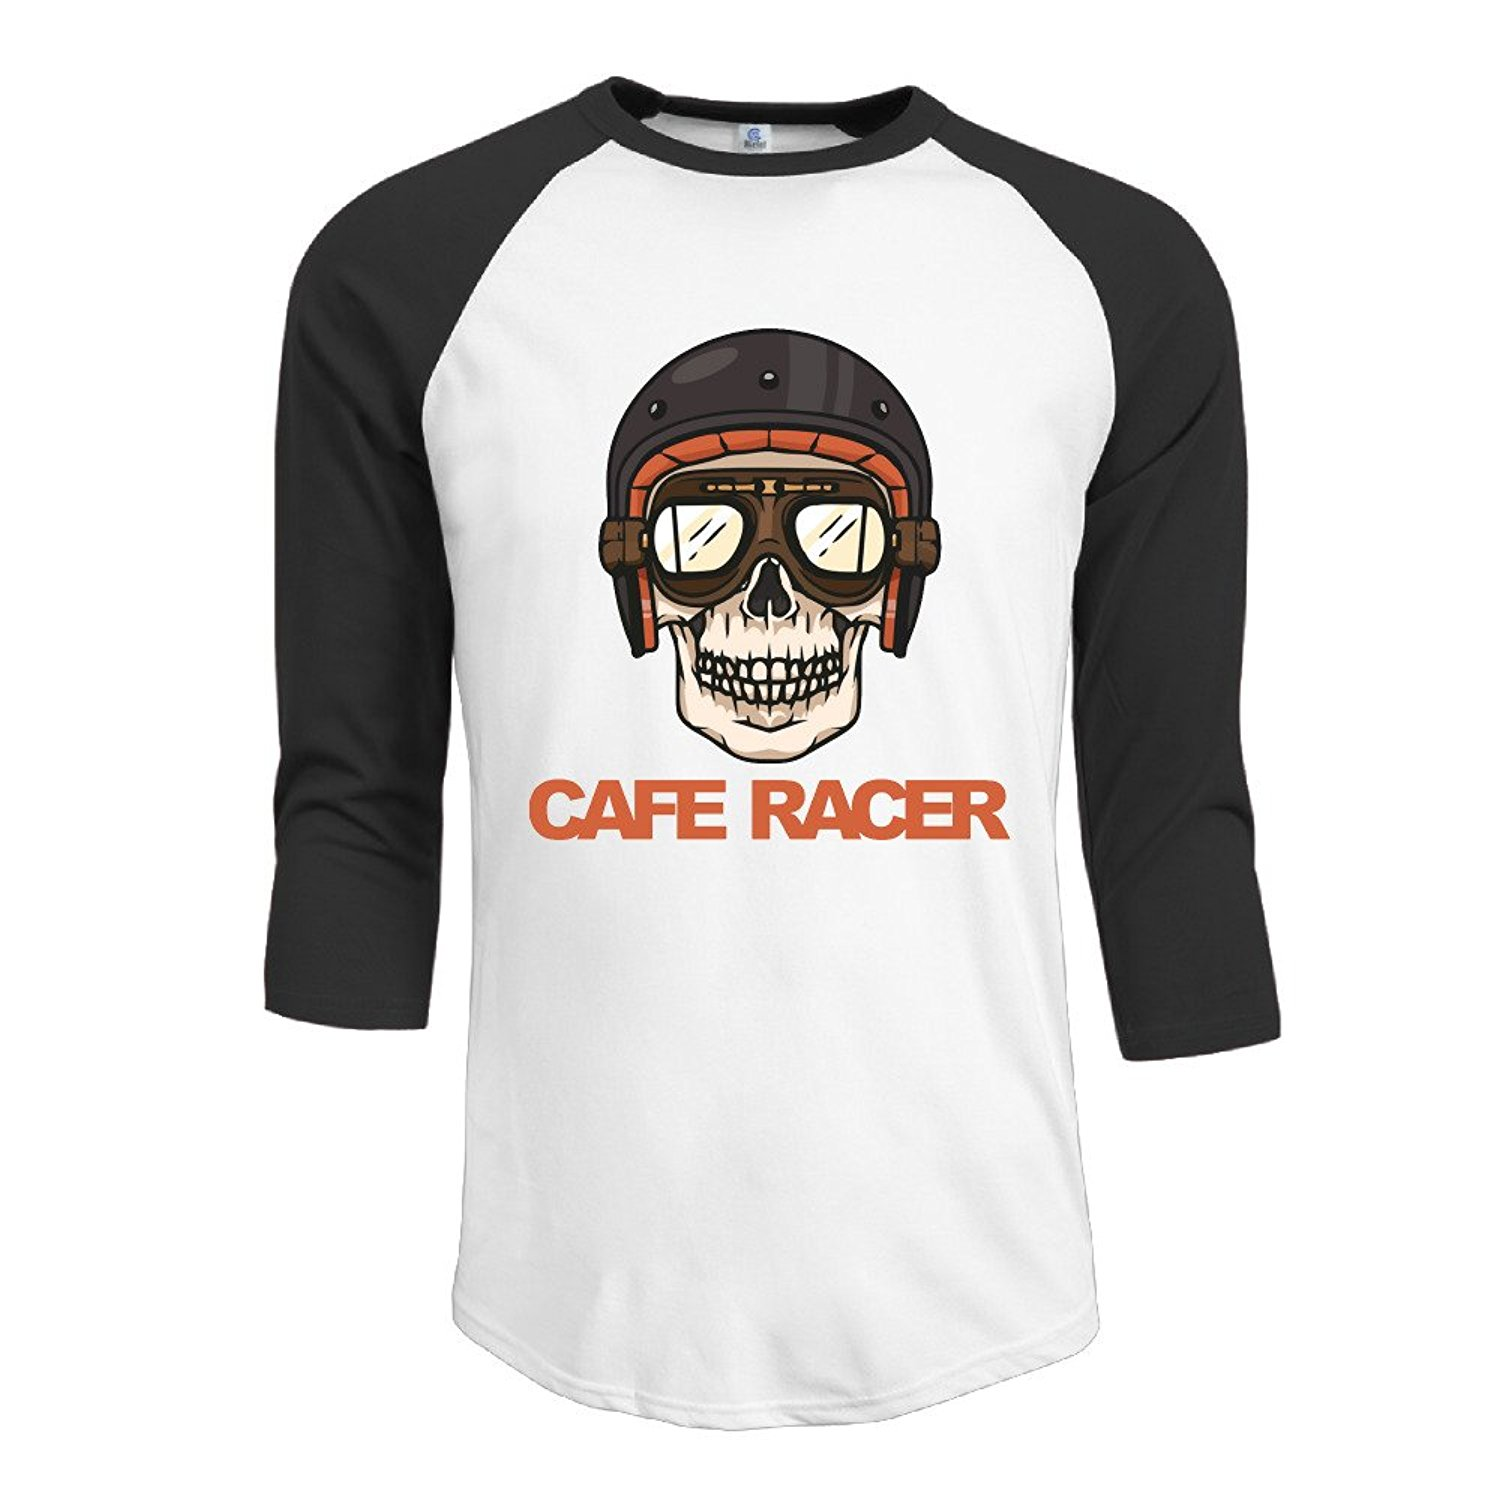 32bff98a Get Quotations · Cafe Racer Motorcycles Bikes Men's Raglan Baseball Jersey T -Shirts Crew Neck